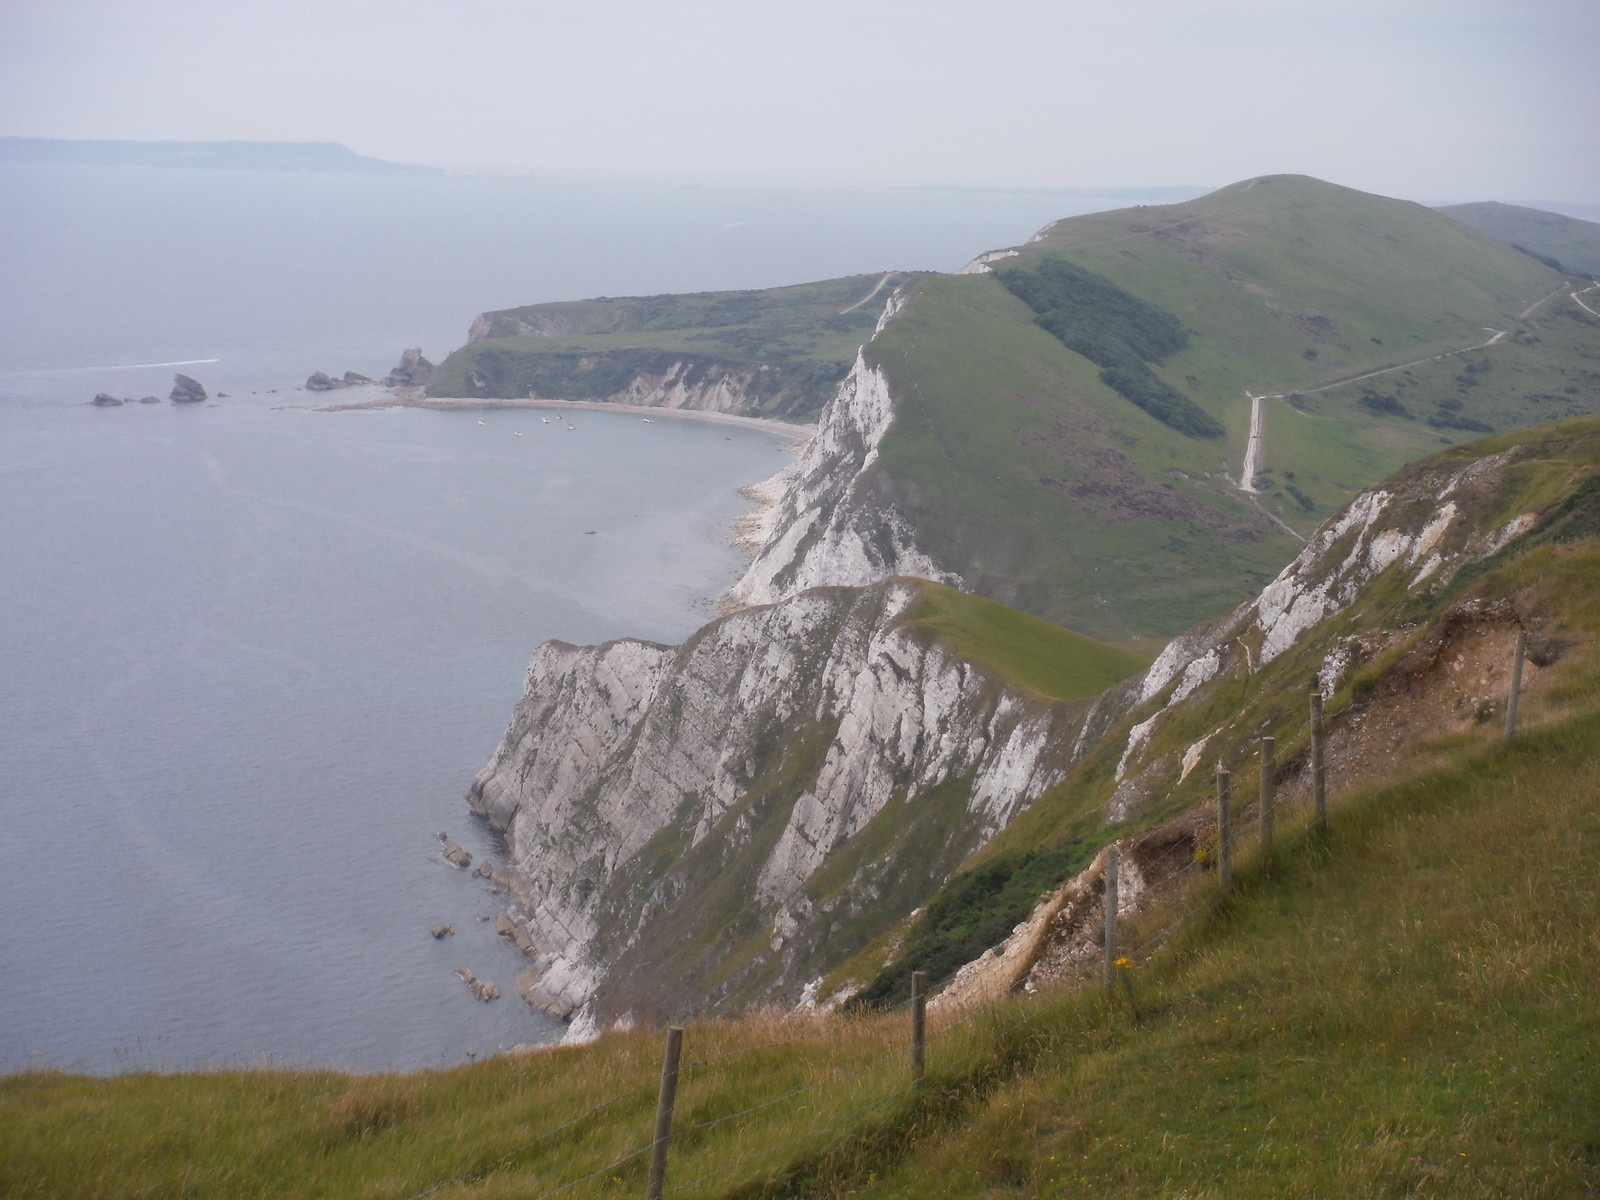 Backview from Rings Hill/Flower's Barrow Hillfort SWC Walk 54 - Lulworth Cove Circular (via Tyneham and Durdle Door)